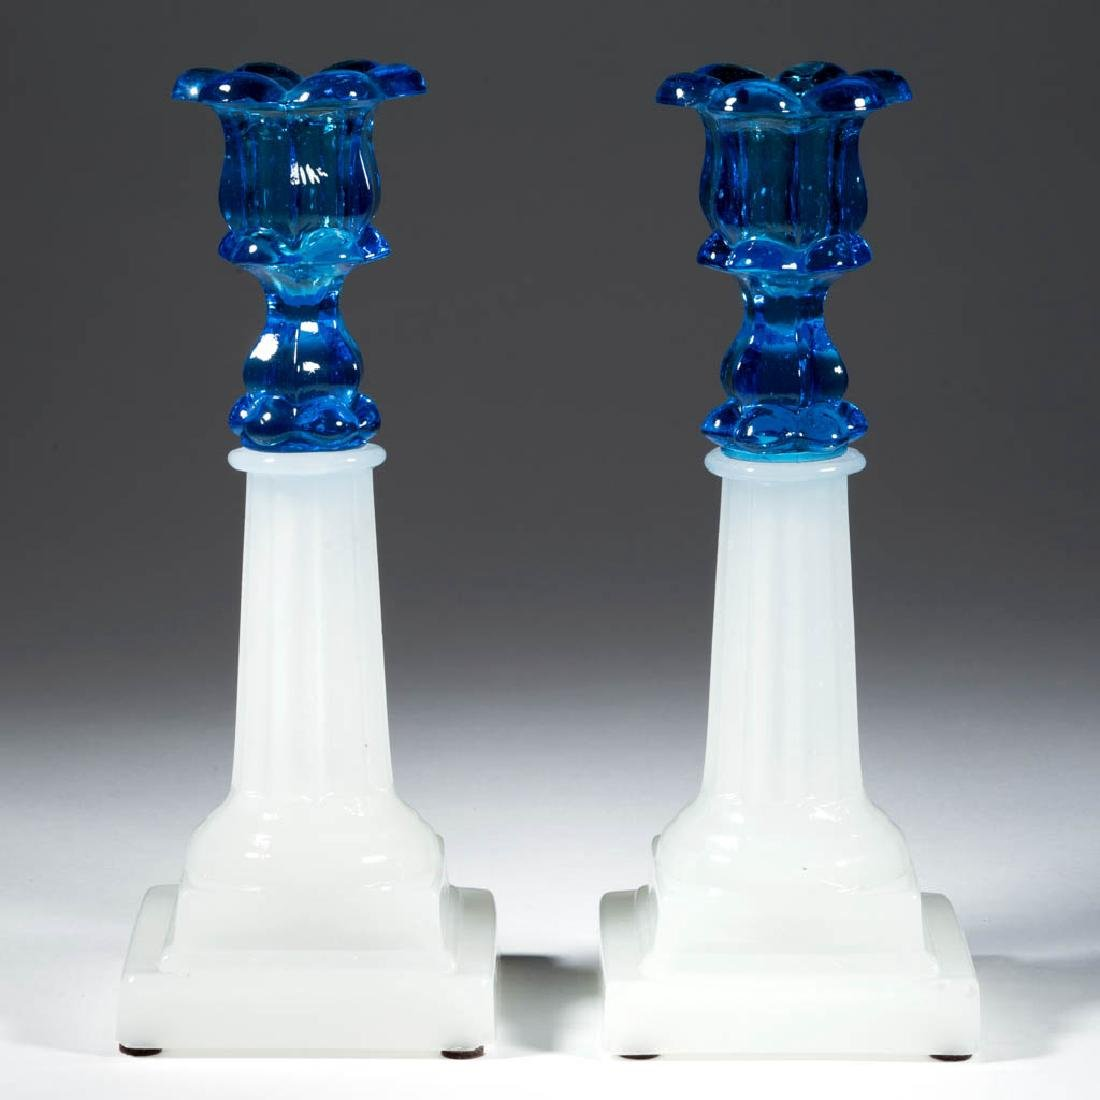 PRESSED PETAL AND COLUMNAR PAIR OF CANDLESTICKS